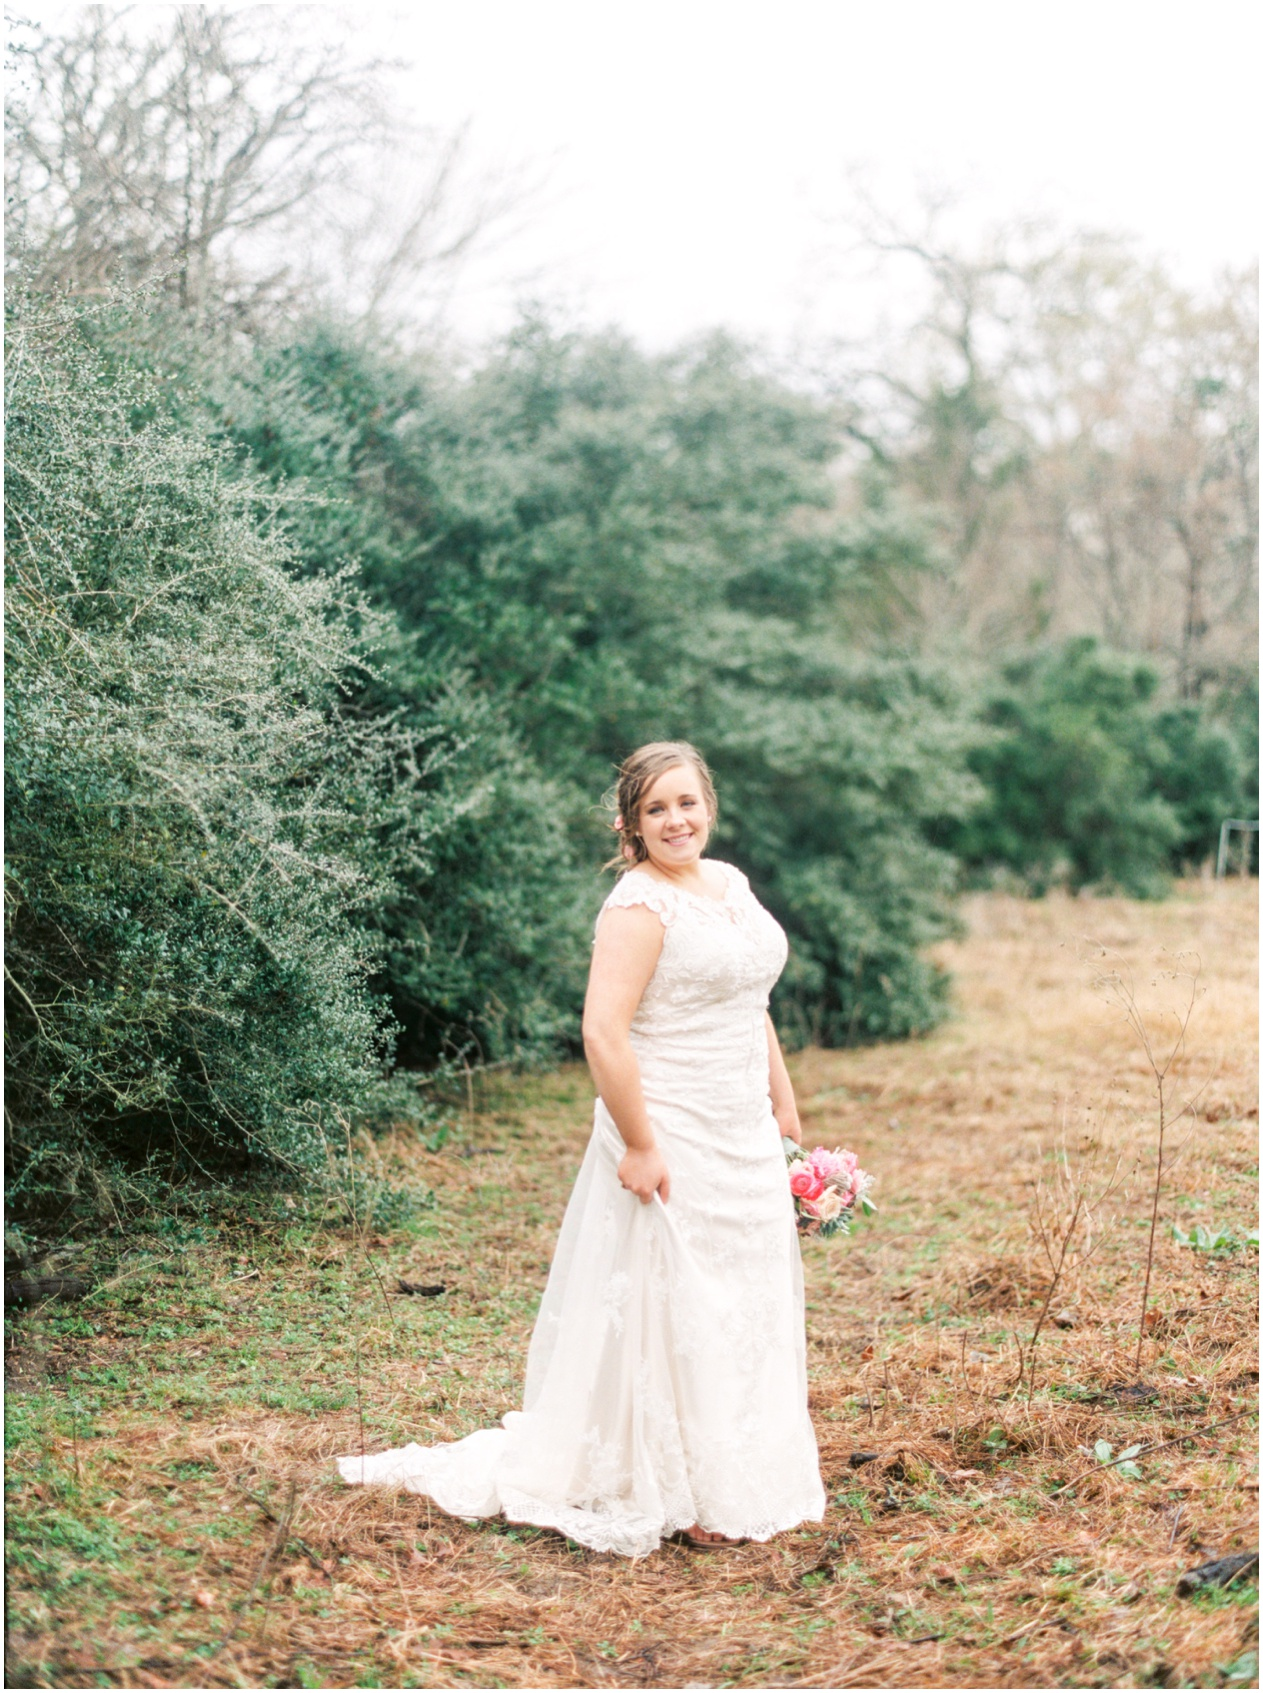 Sarah Best Photography - Claire's Bridals - The Amish Barn at Edge-35_STP.jpg